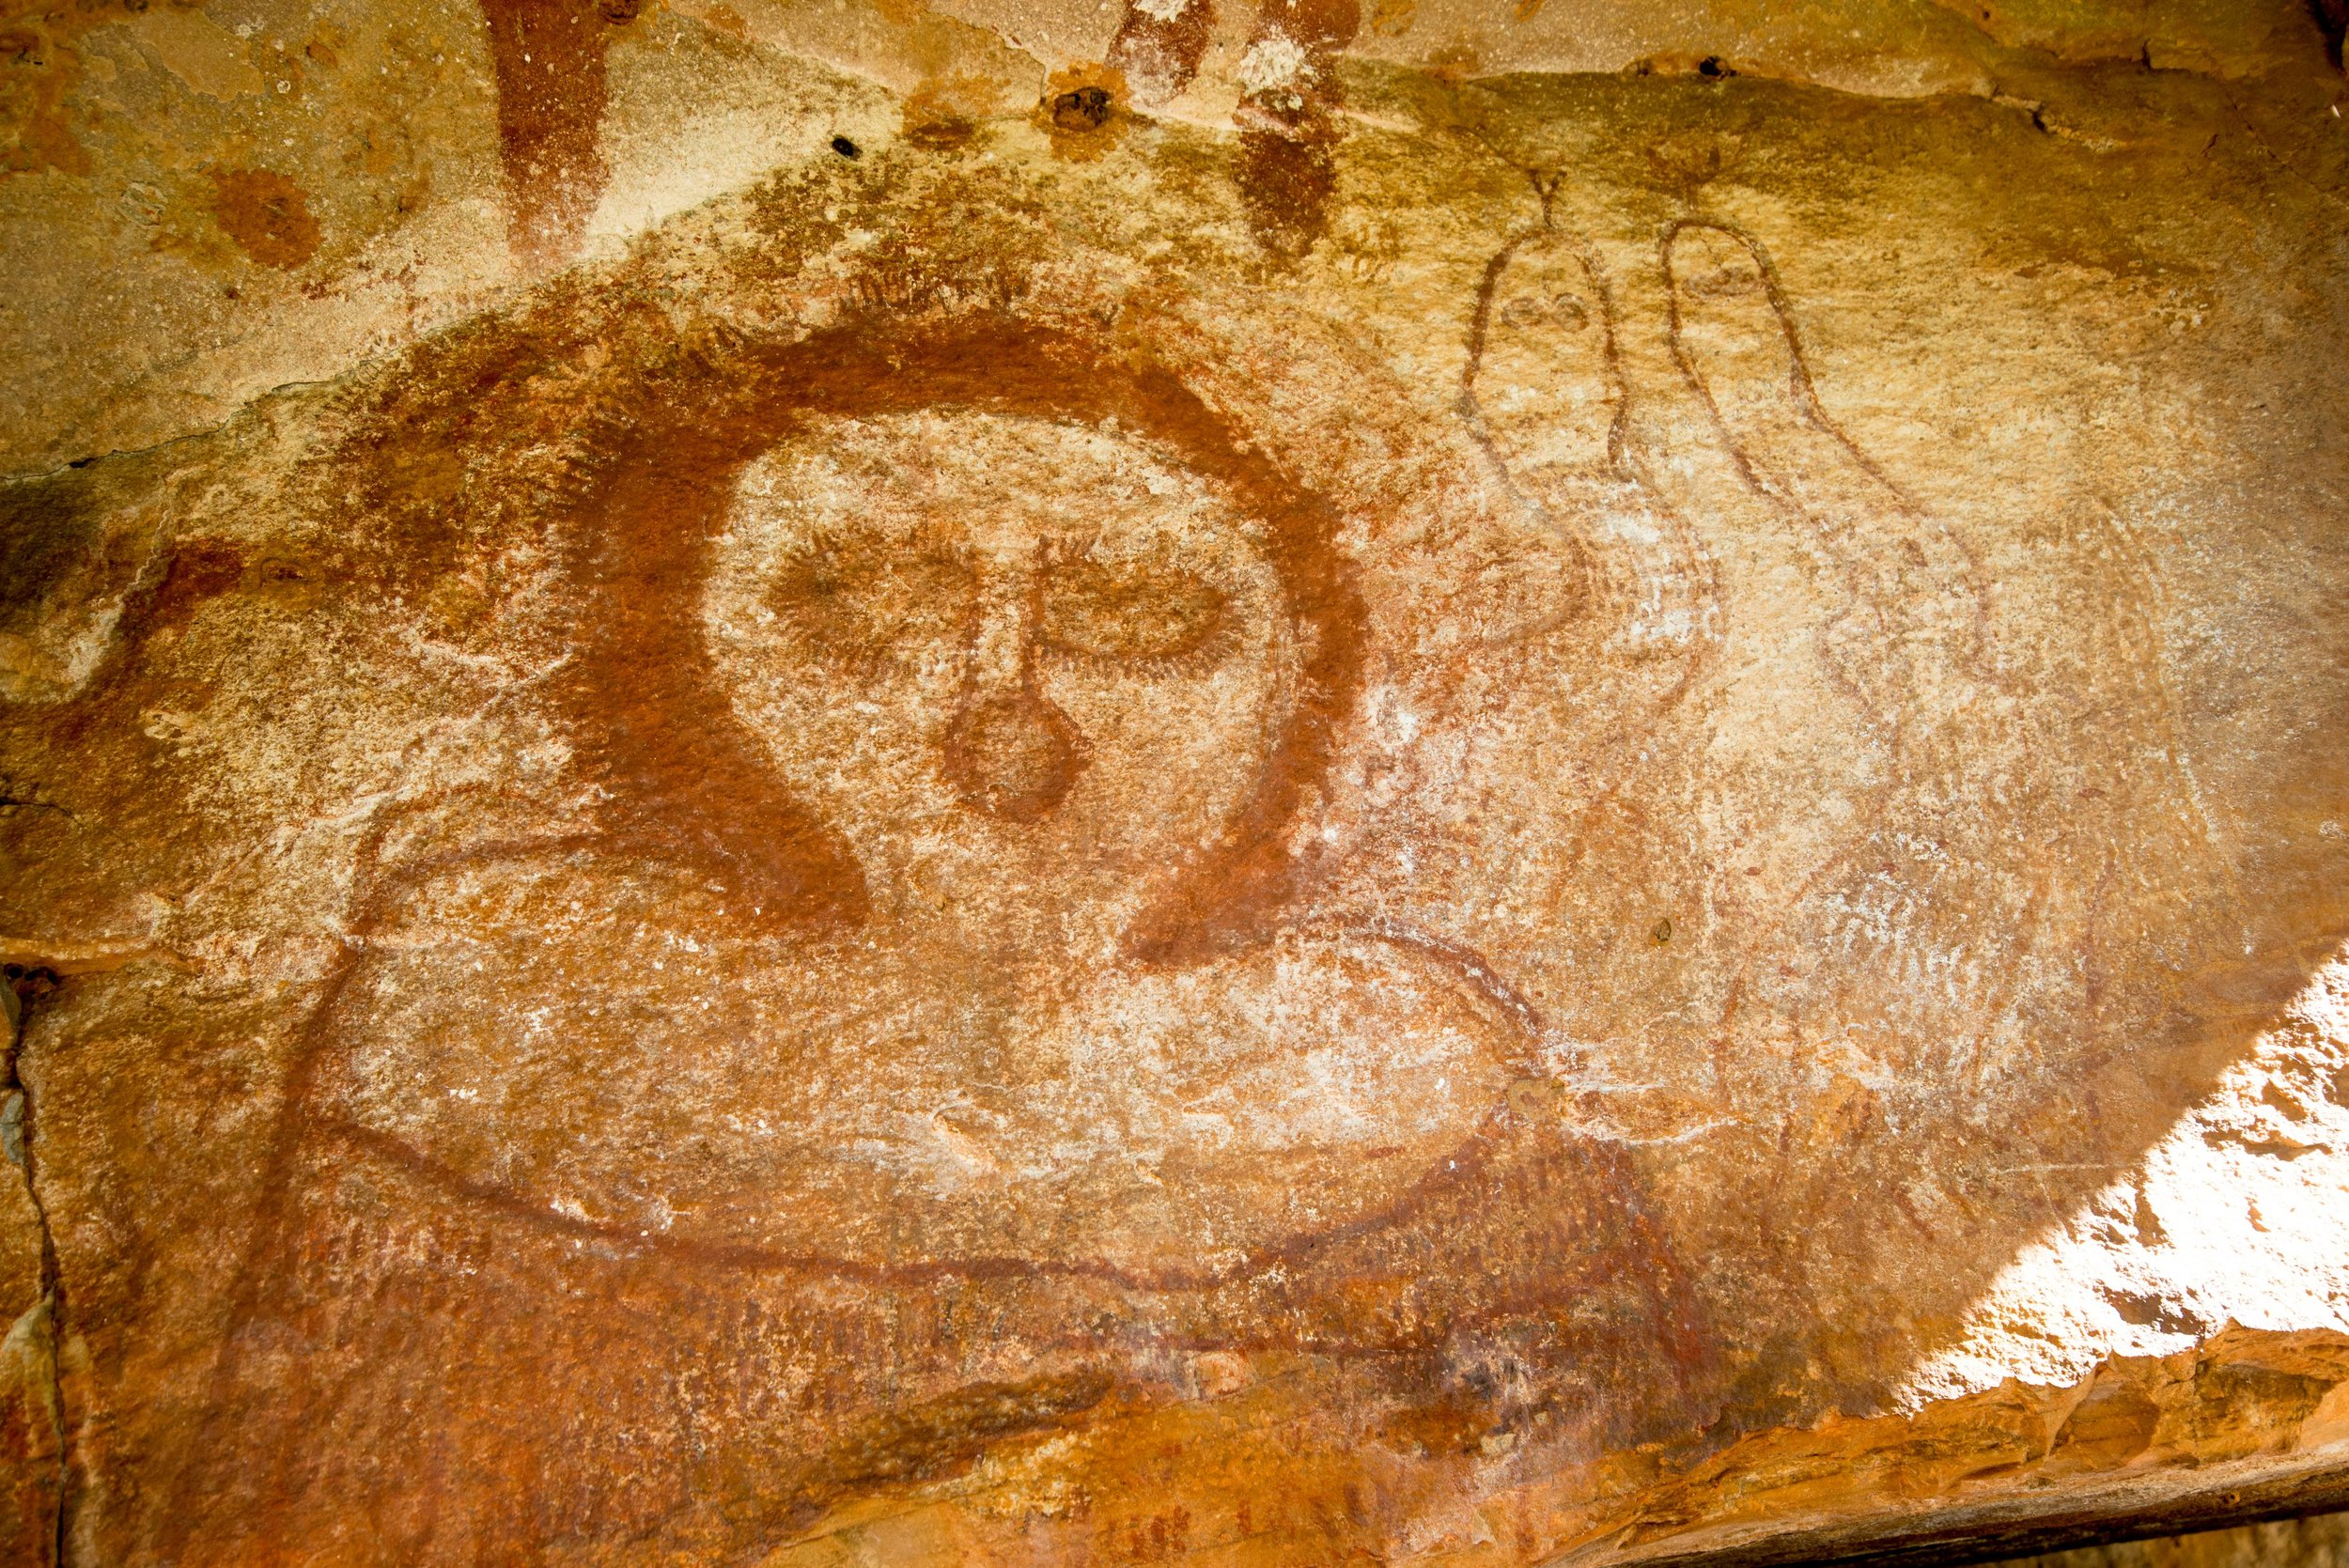 Wandjina rock art in the Kimberley